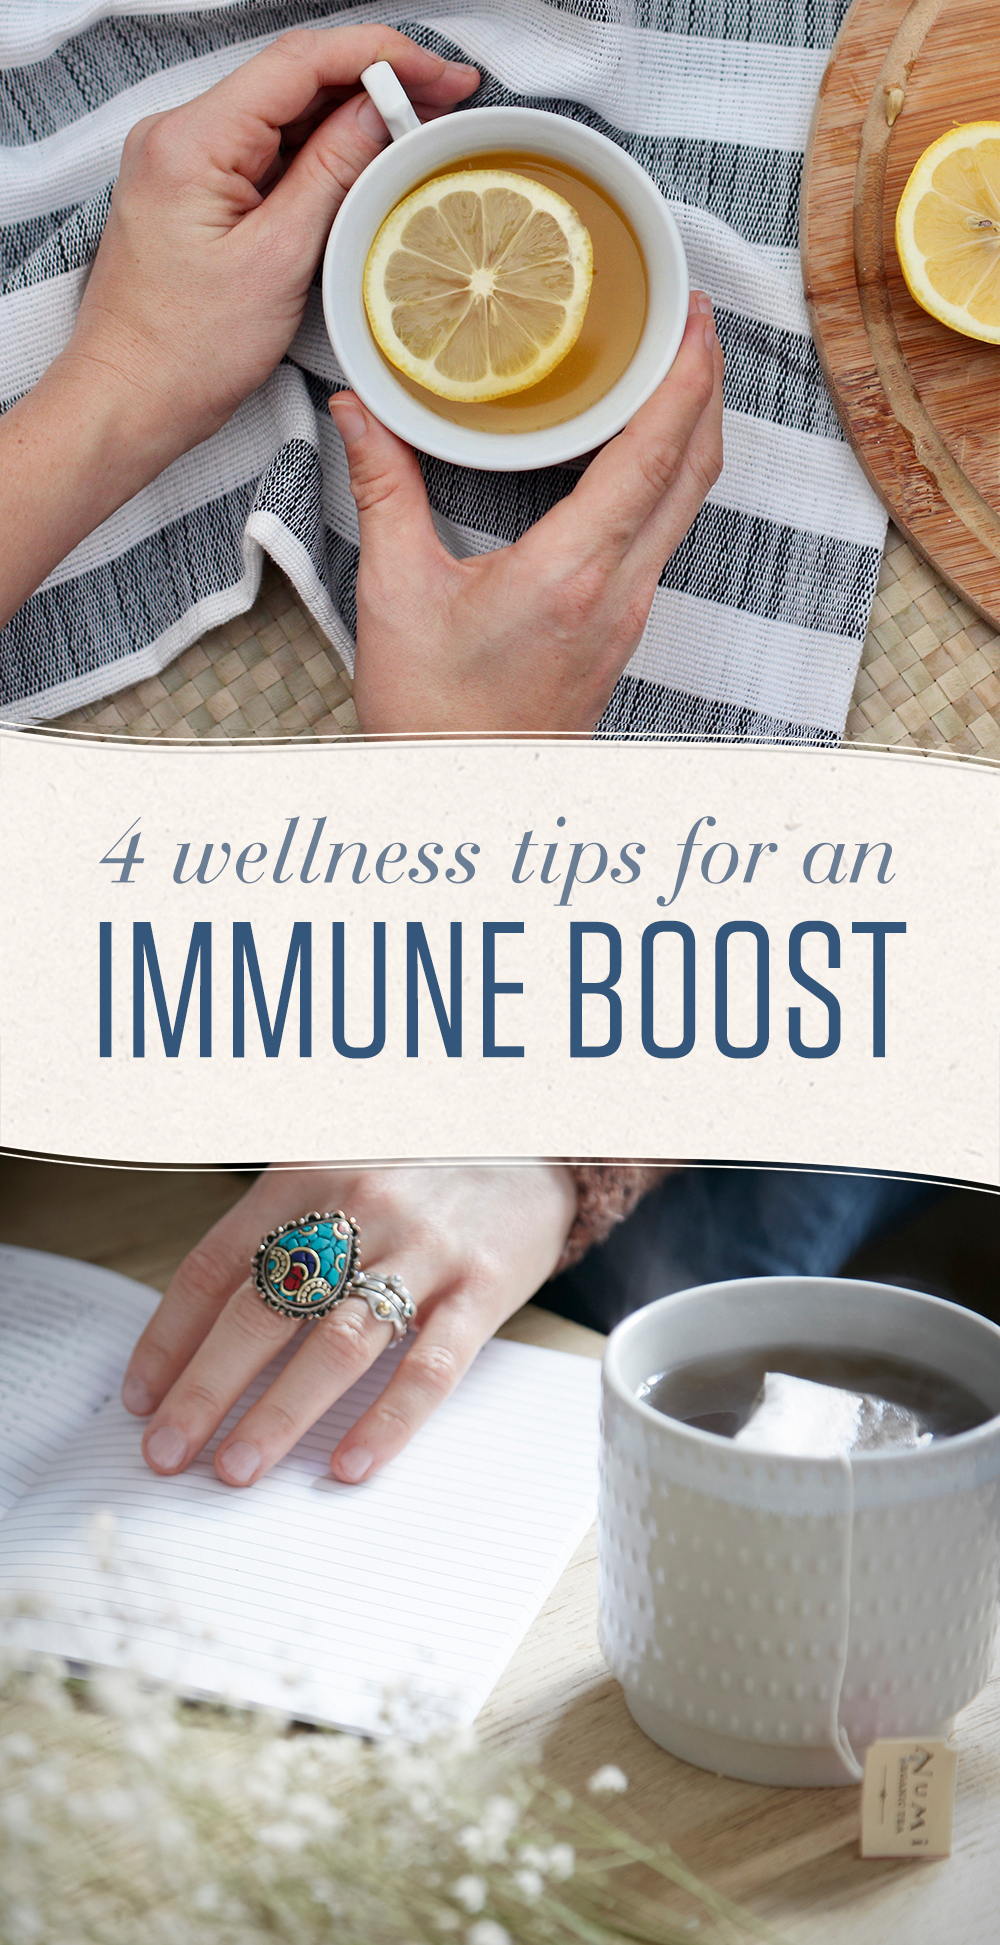 With fall AND viruses in the air, it's wise to follow these wellness tips and boost your immune system for better resistance to illness.